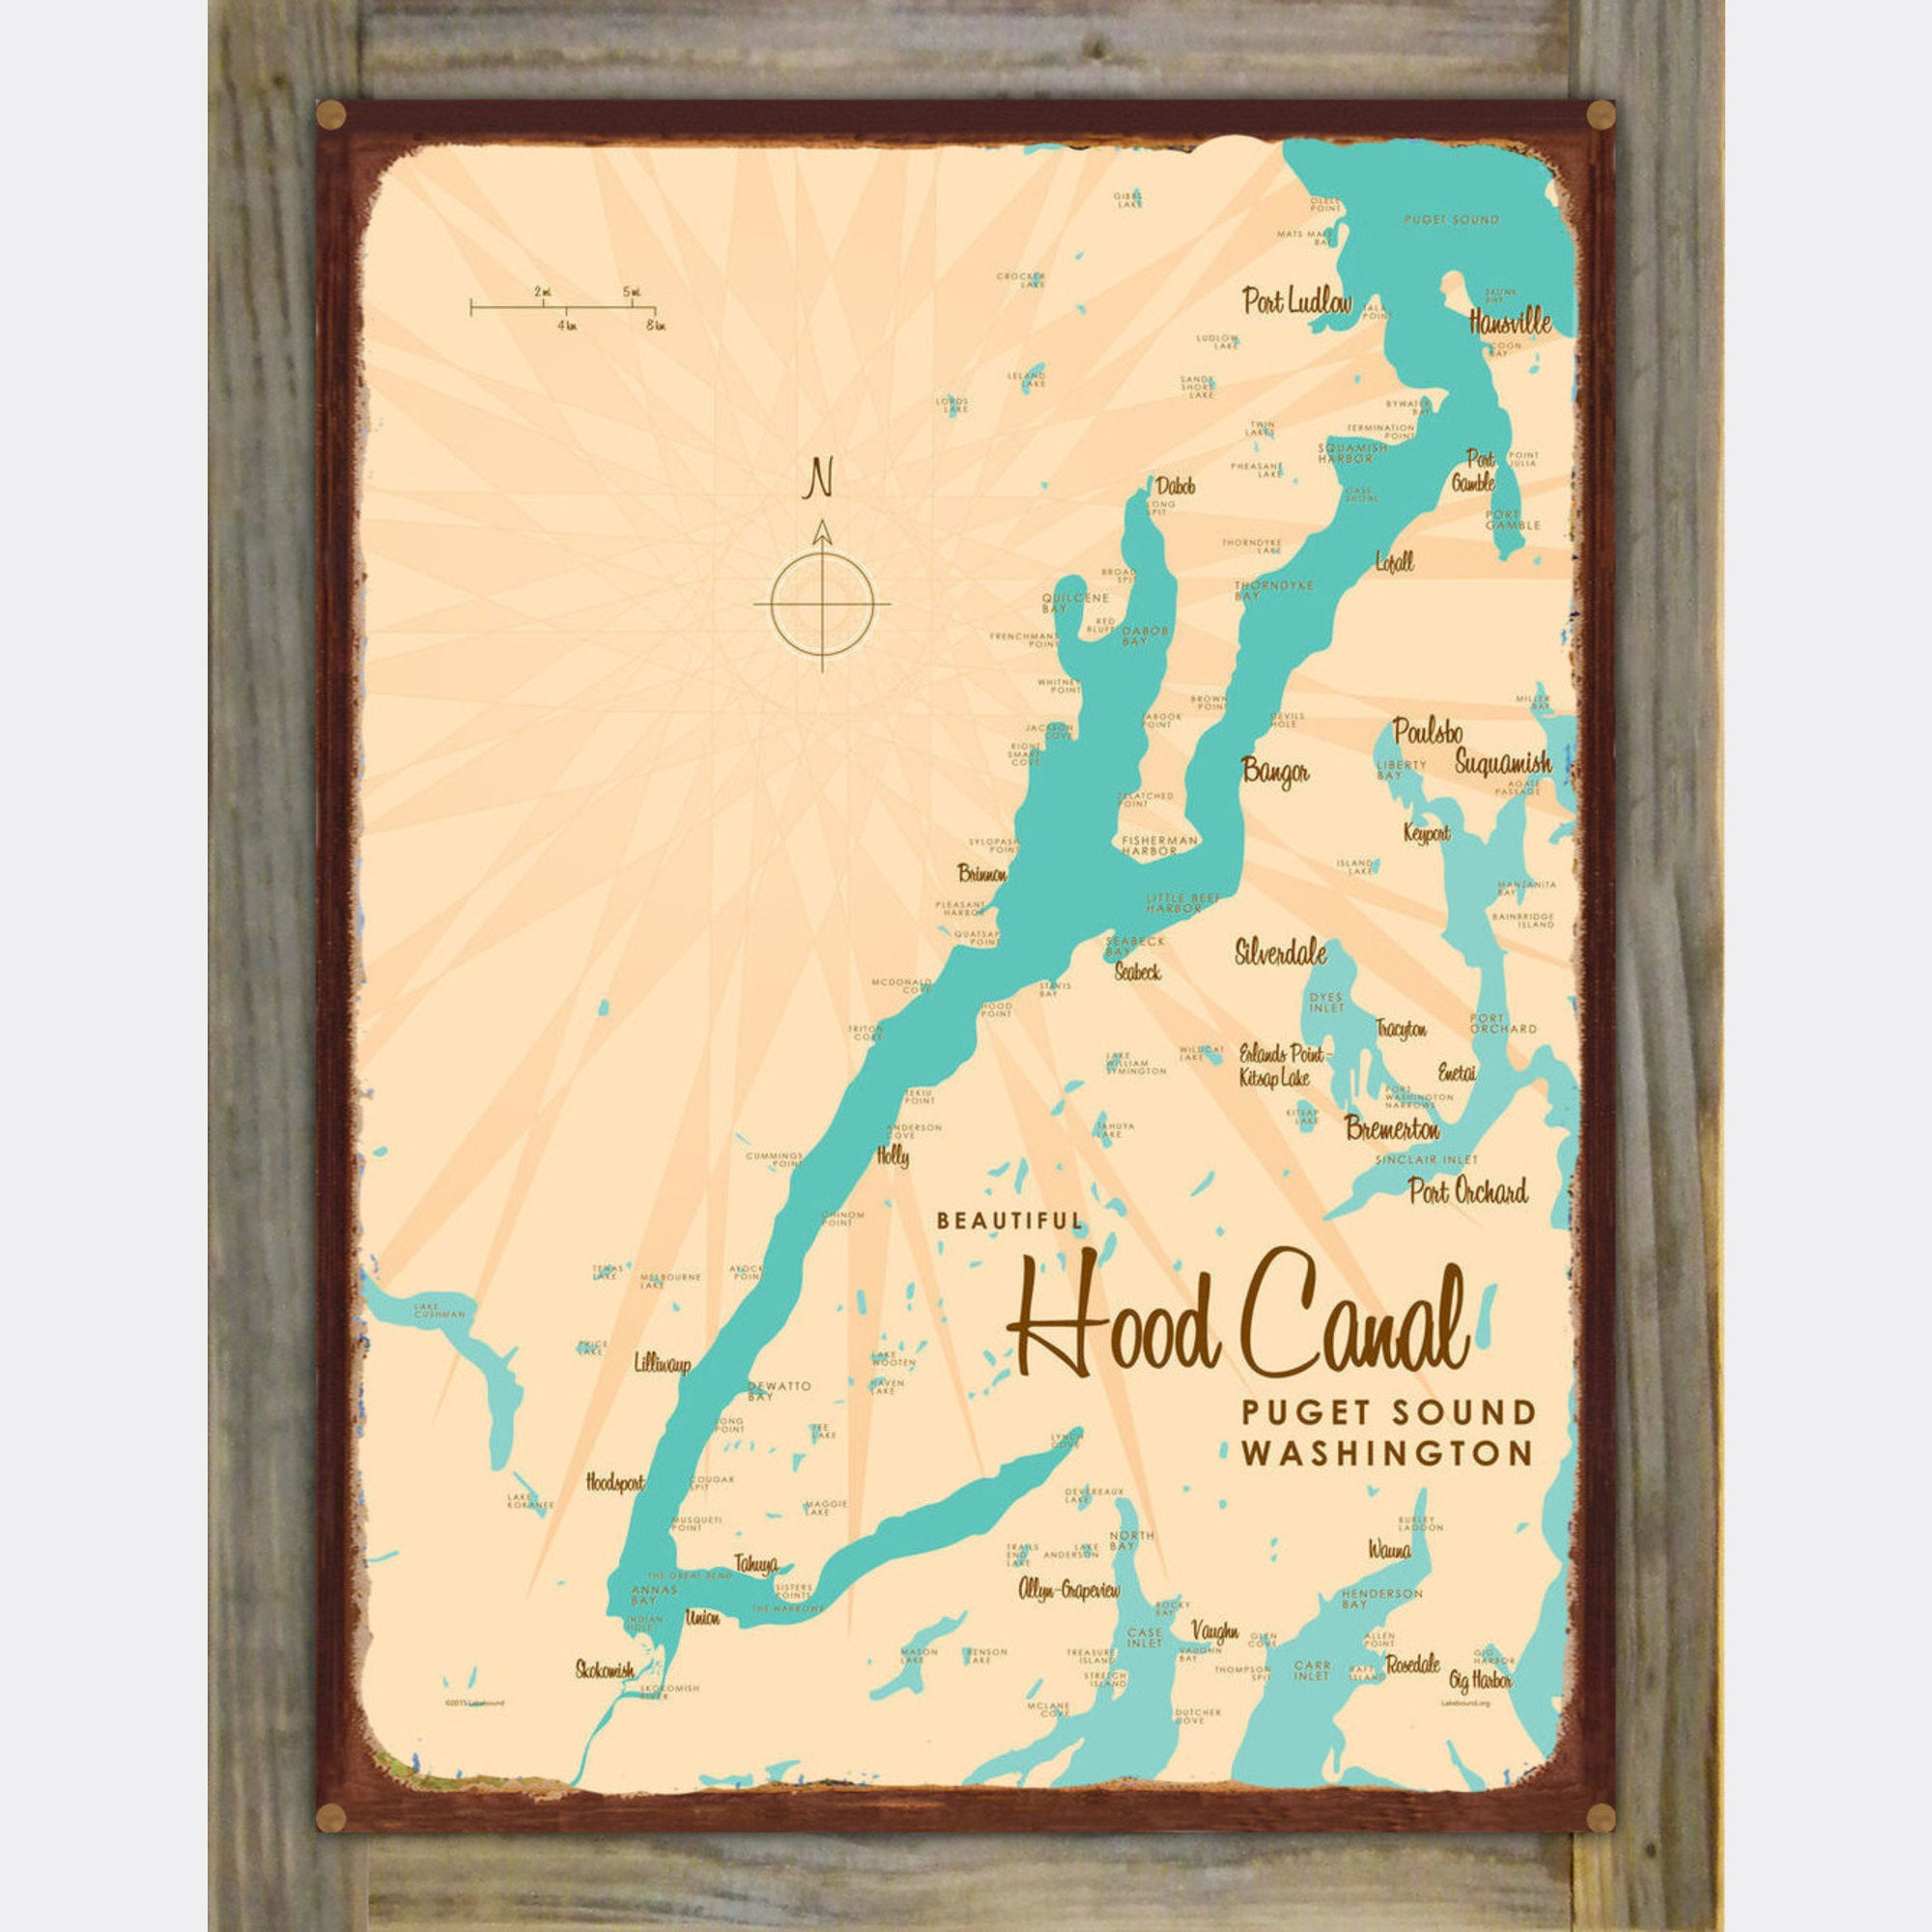 Hood Canal Washington, Wood-Mounted Rustic Metal Sign Map Art